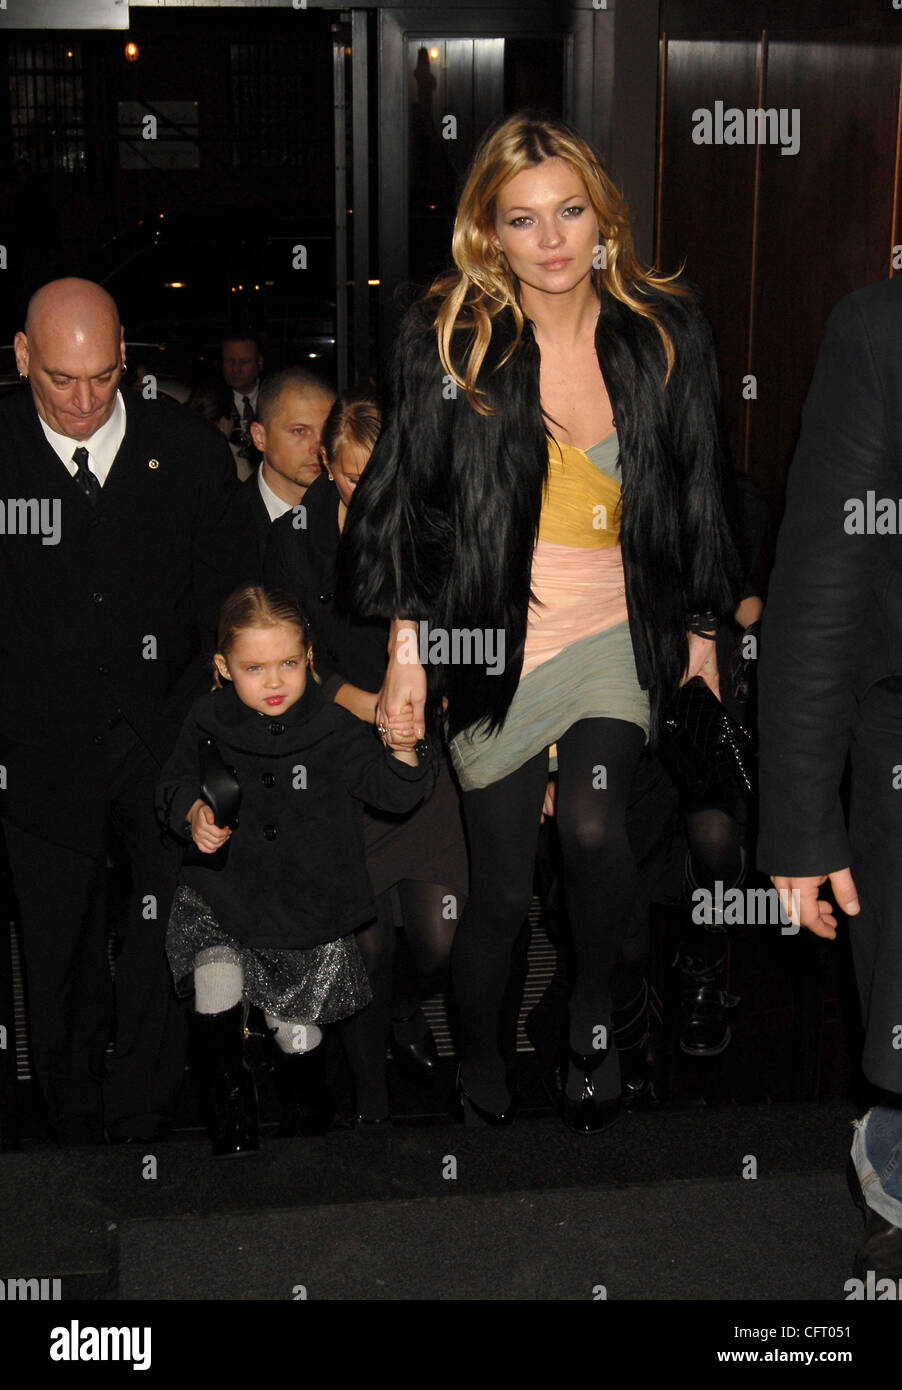 Dec 01, 2006; New York, NY, USA; KATE MOSS with daughter LILA GRACE arrive at a benefit auction of photographic - Stock Image